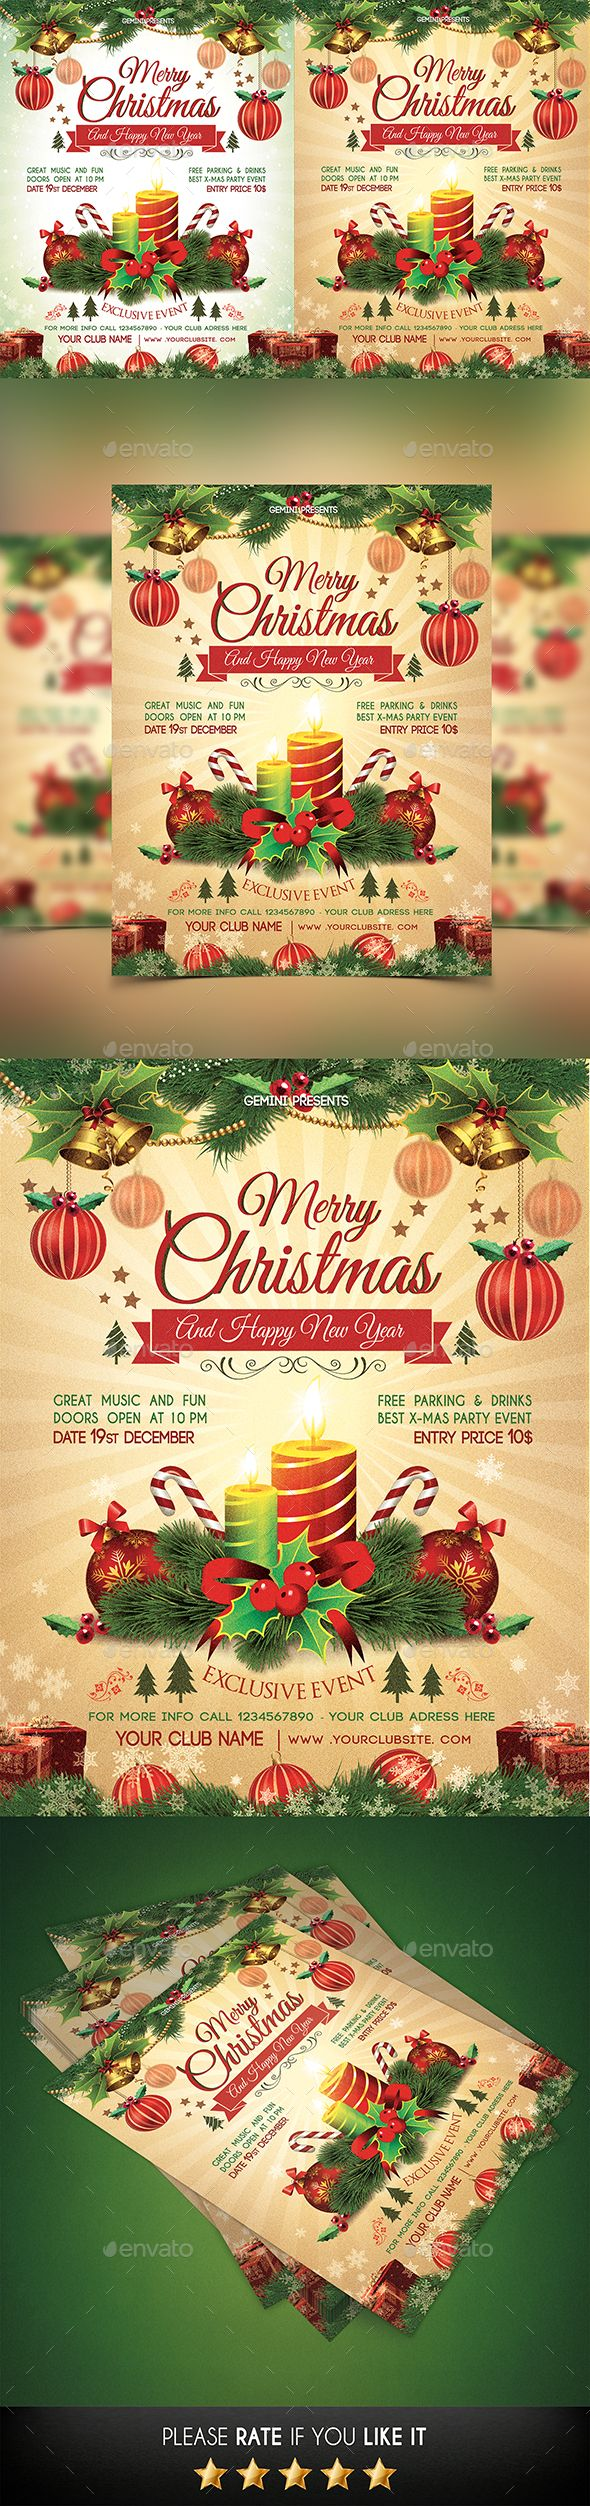 Christmas Party #Flyer - #Holidays Events #Christmas #NewYears #Winter #Graphics #Design